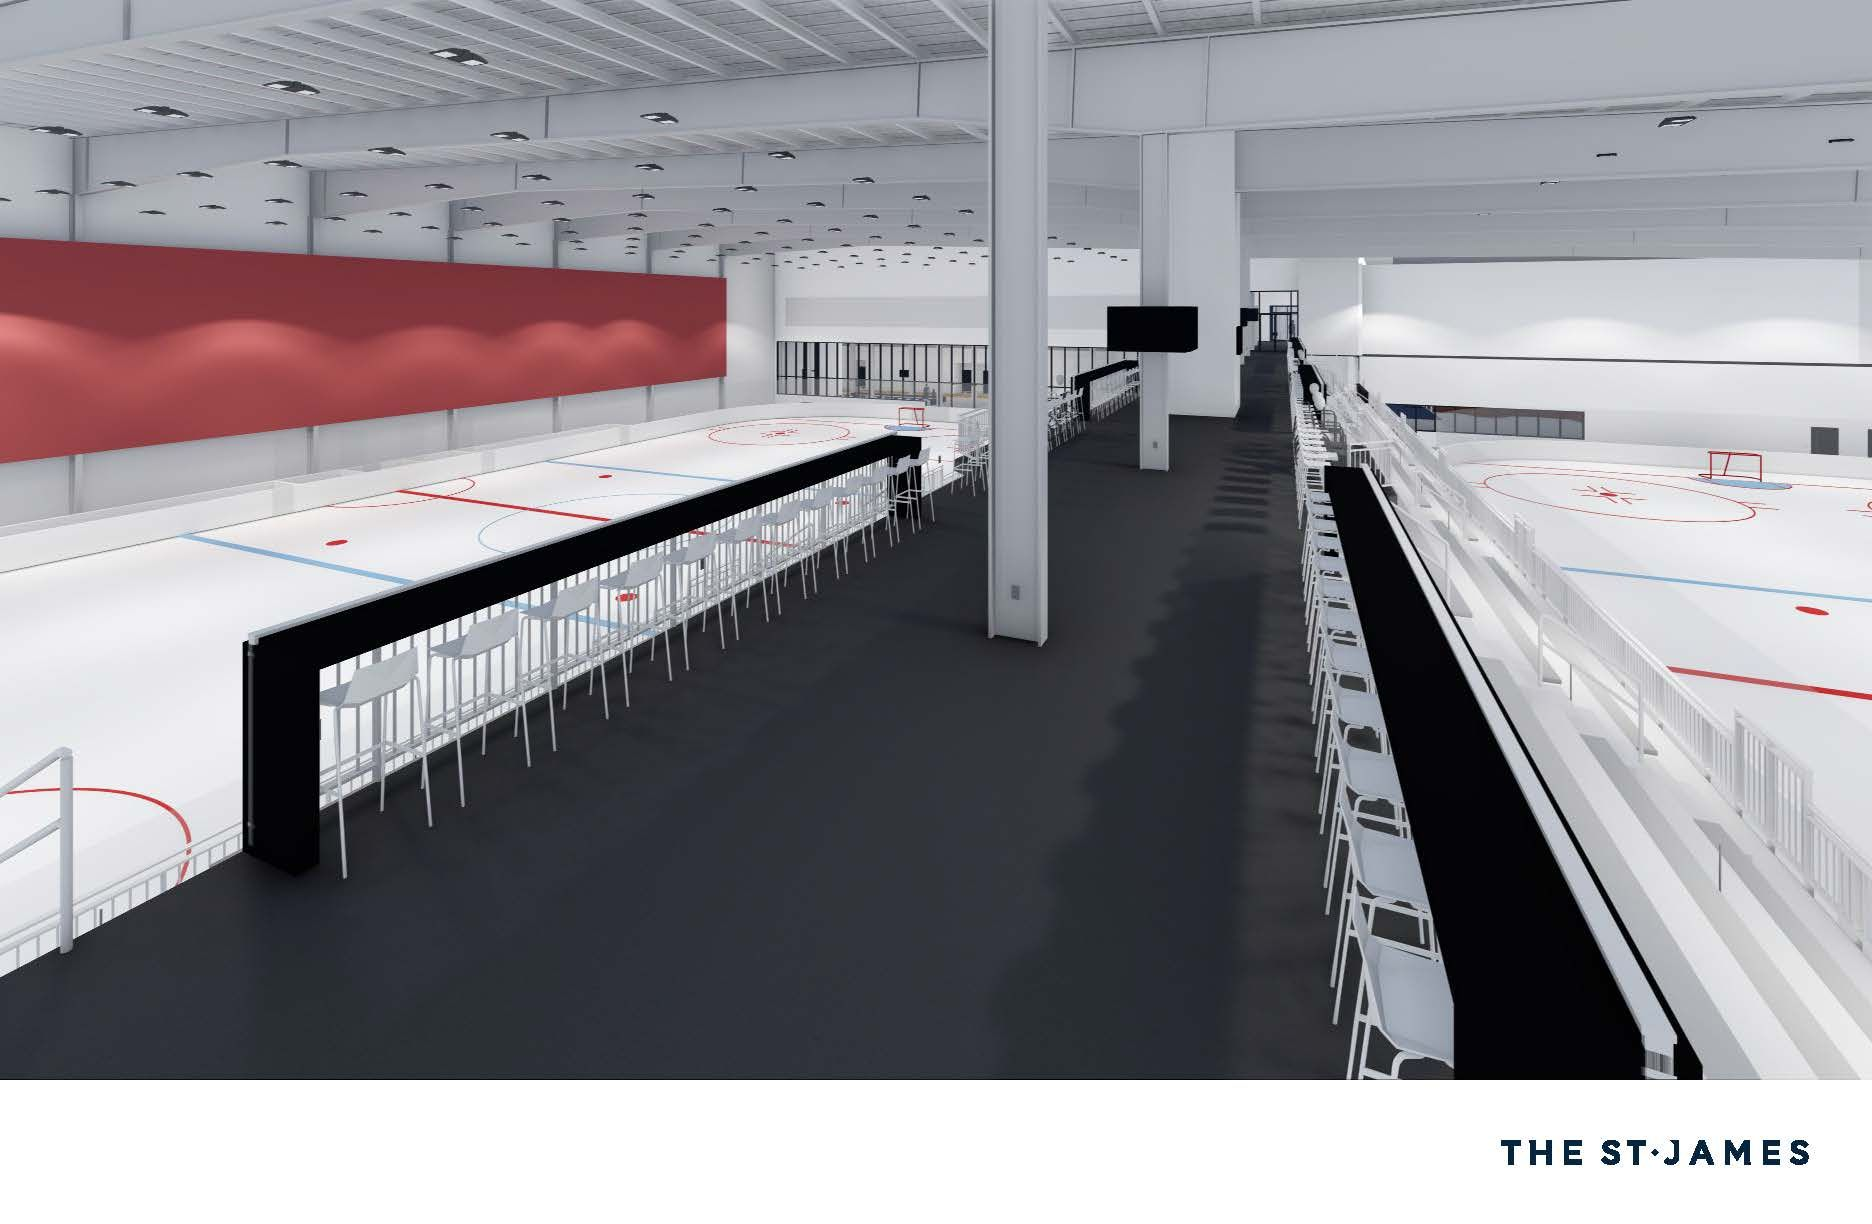 The complex includes two NHL-sized ice rinks. (Courtesy St. James Sports Complex)